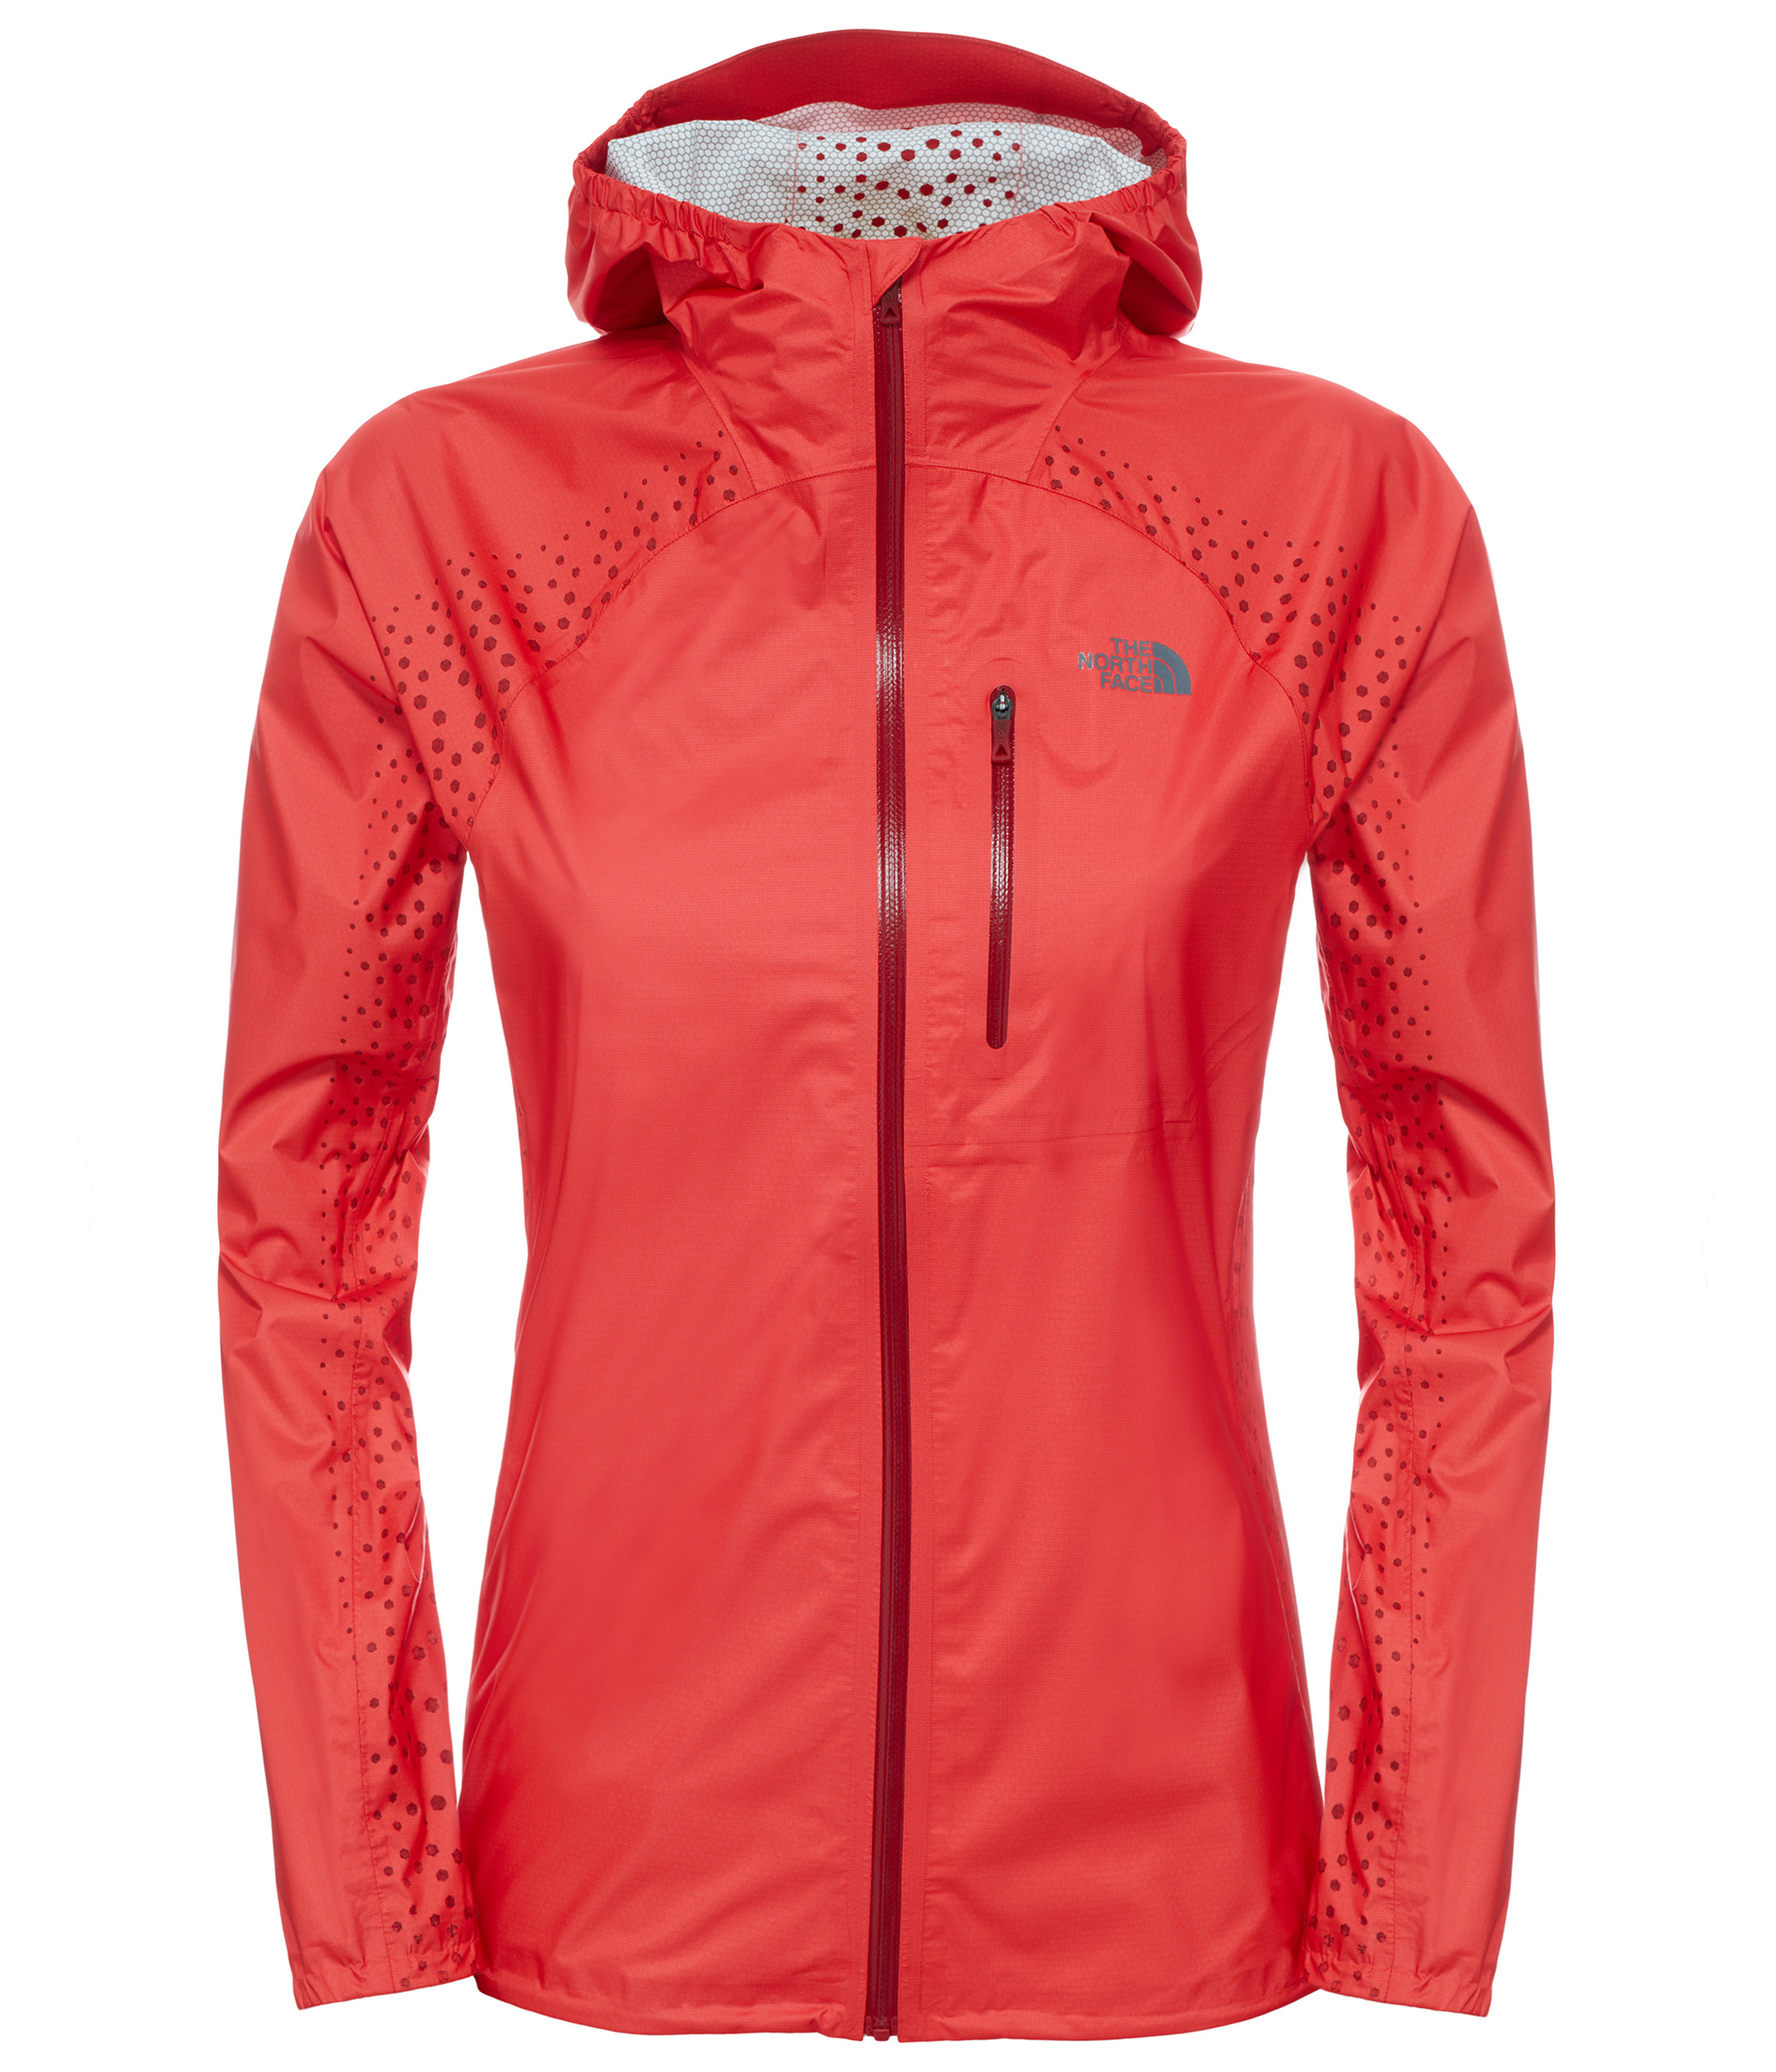 The North Face Women's Flight Series Fuse Jacket